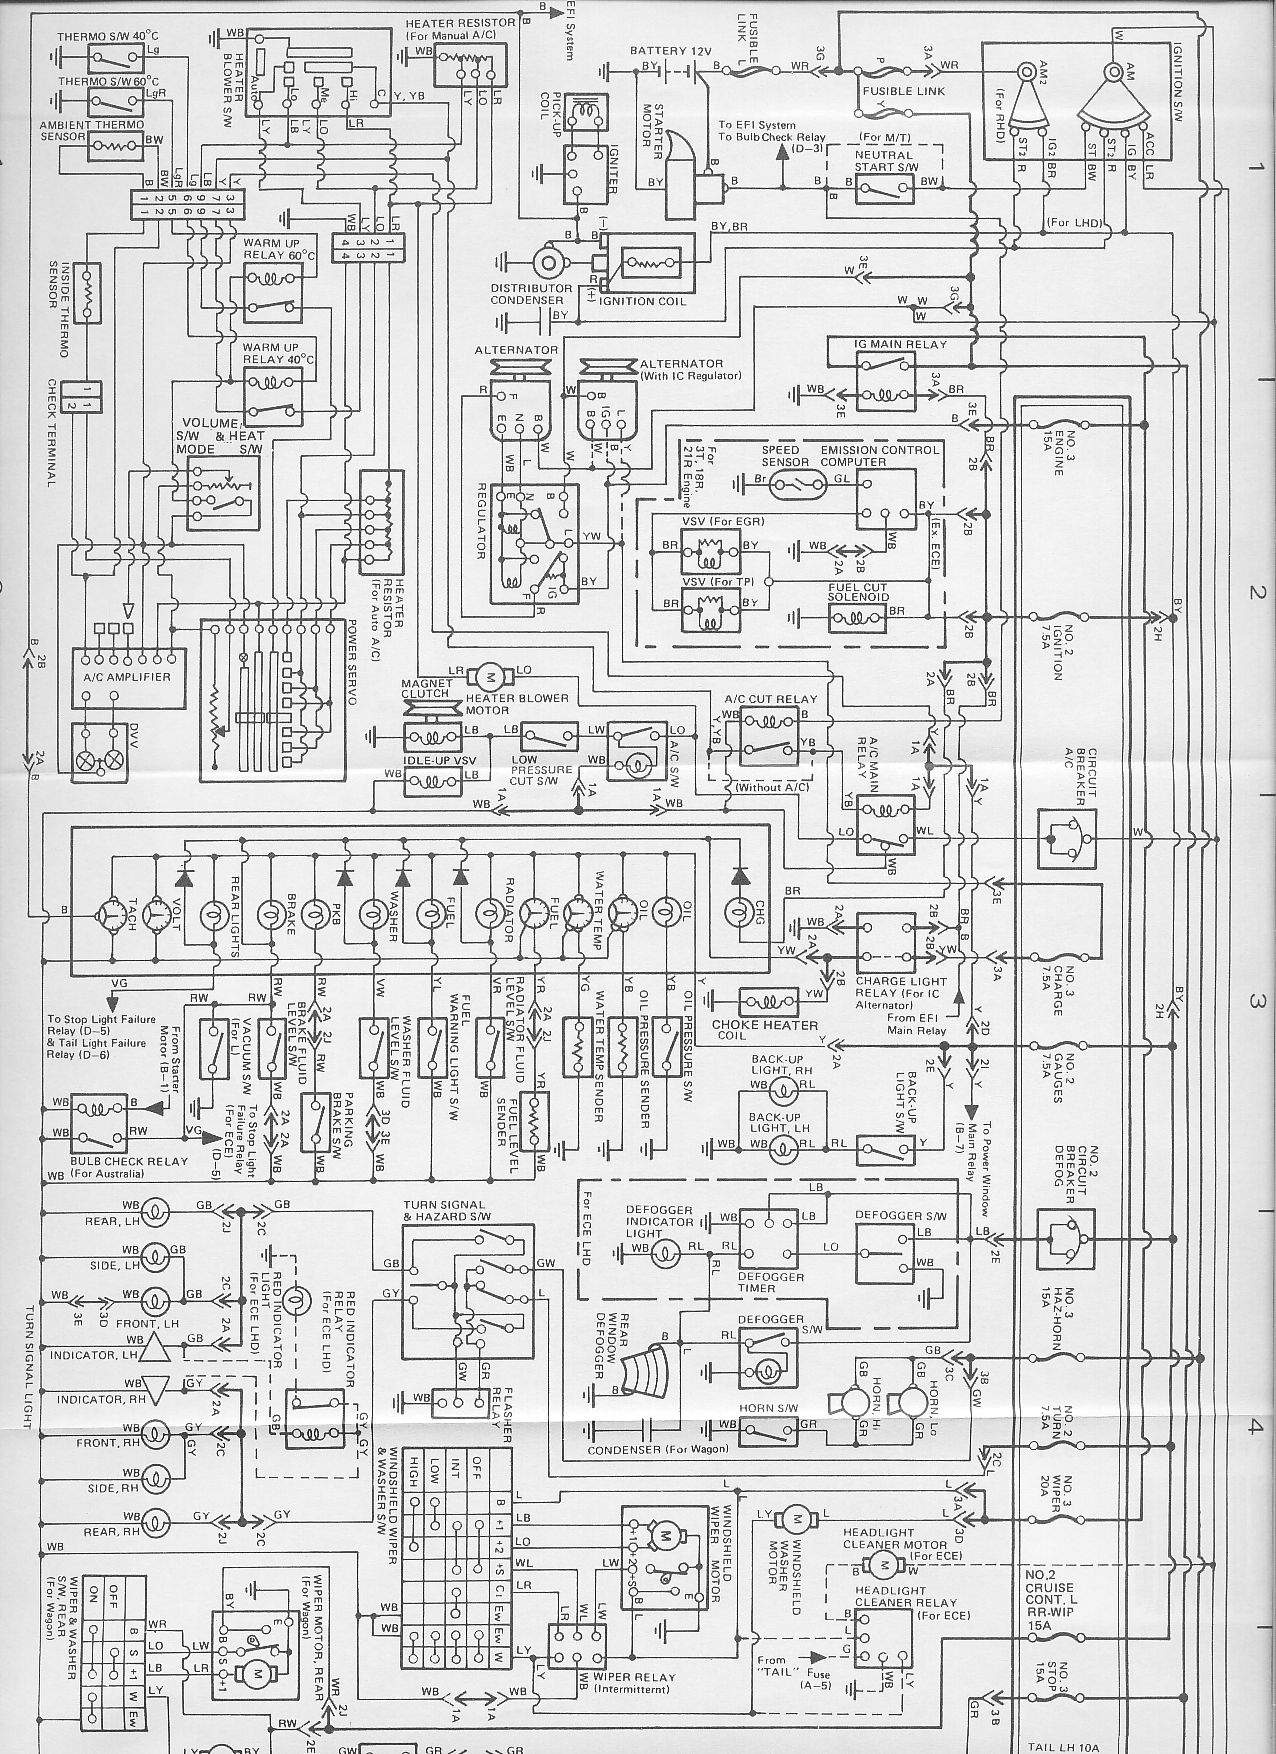 MX62Circuit3a diagrams 705665 international 4700 wiring diagram heater tom 1992 international 4700 wiring diagram at couponss.co